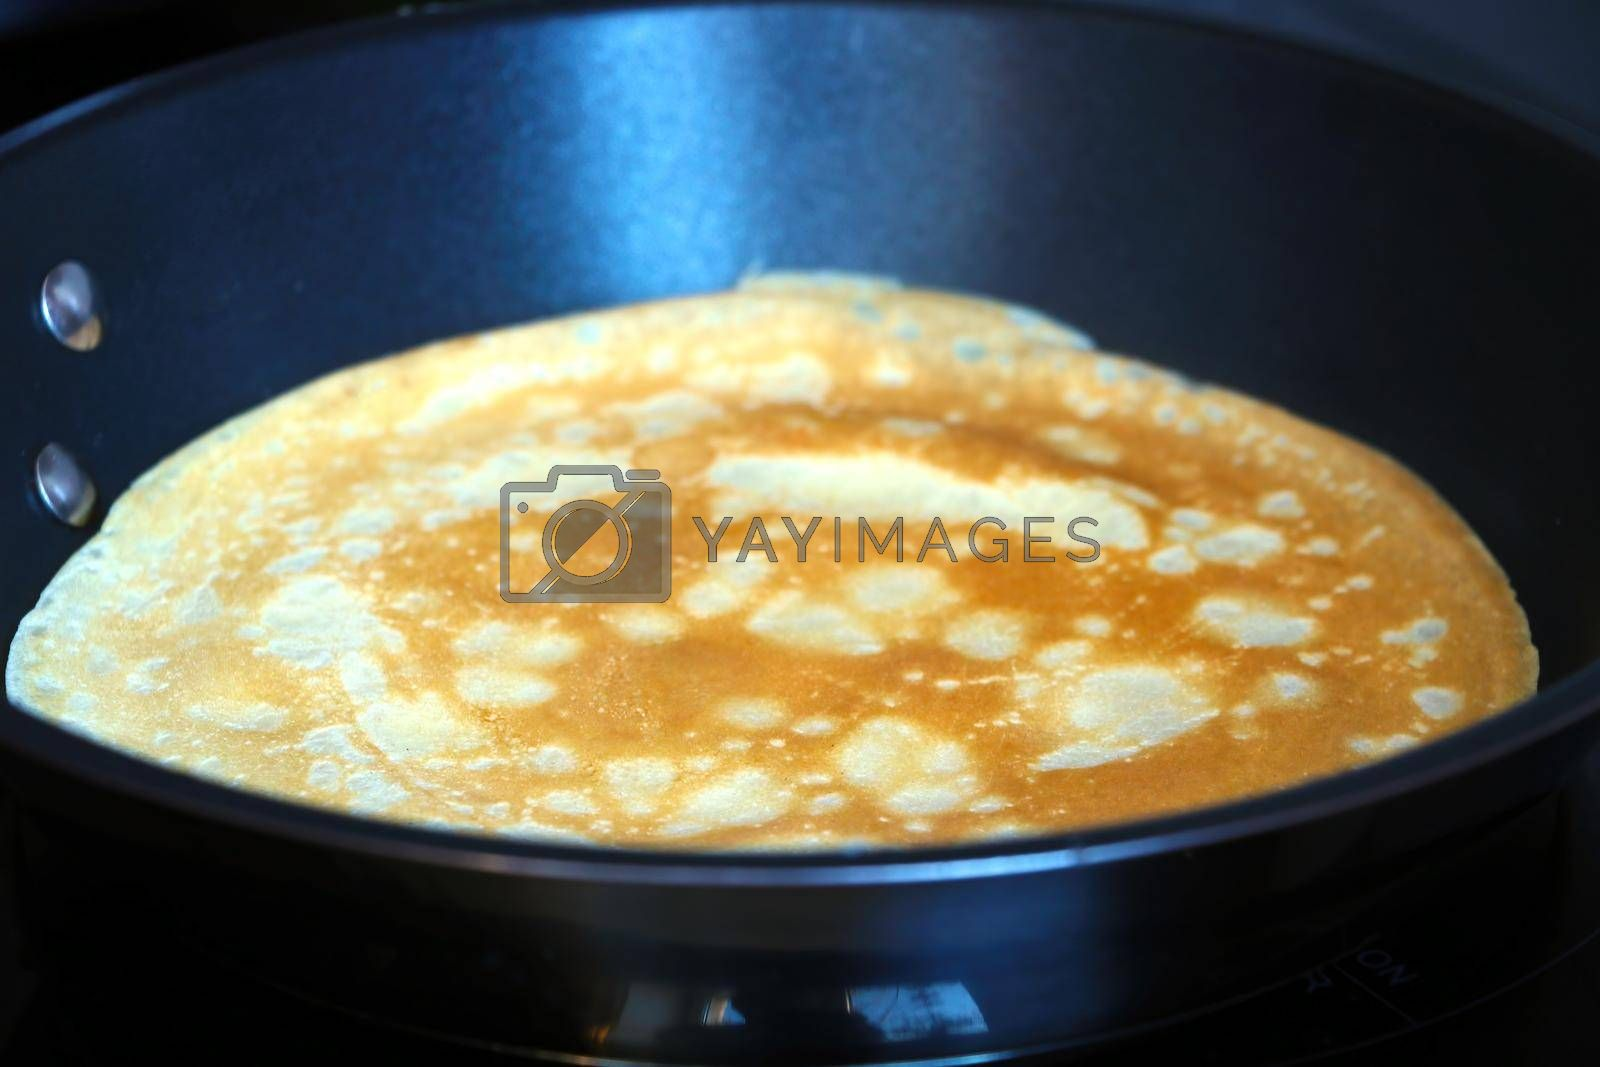 Royalty free image of Prepare a pancake in a skillet. Light and pleasant breakfast. Homemade food. by kip02kas